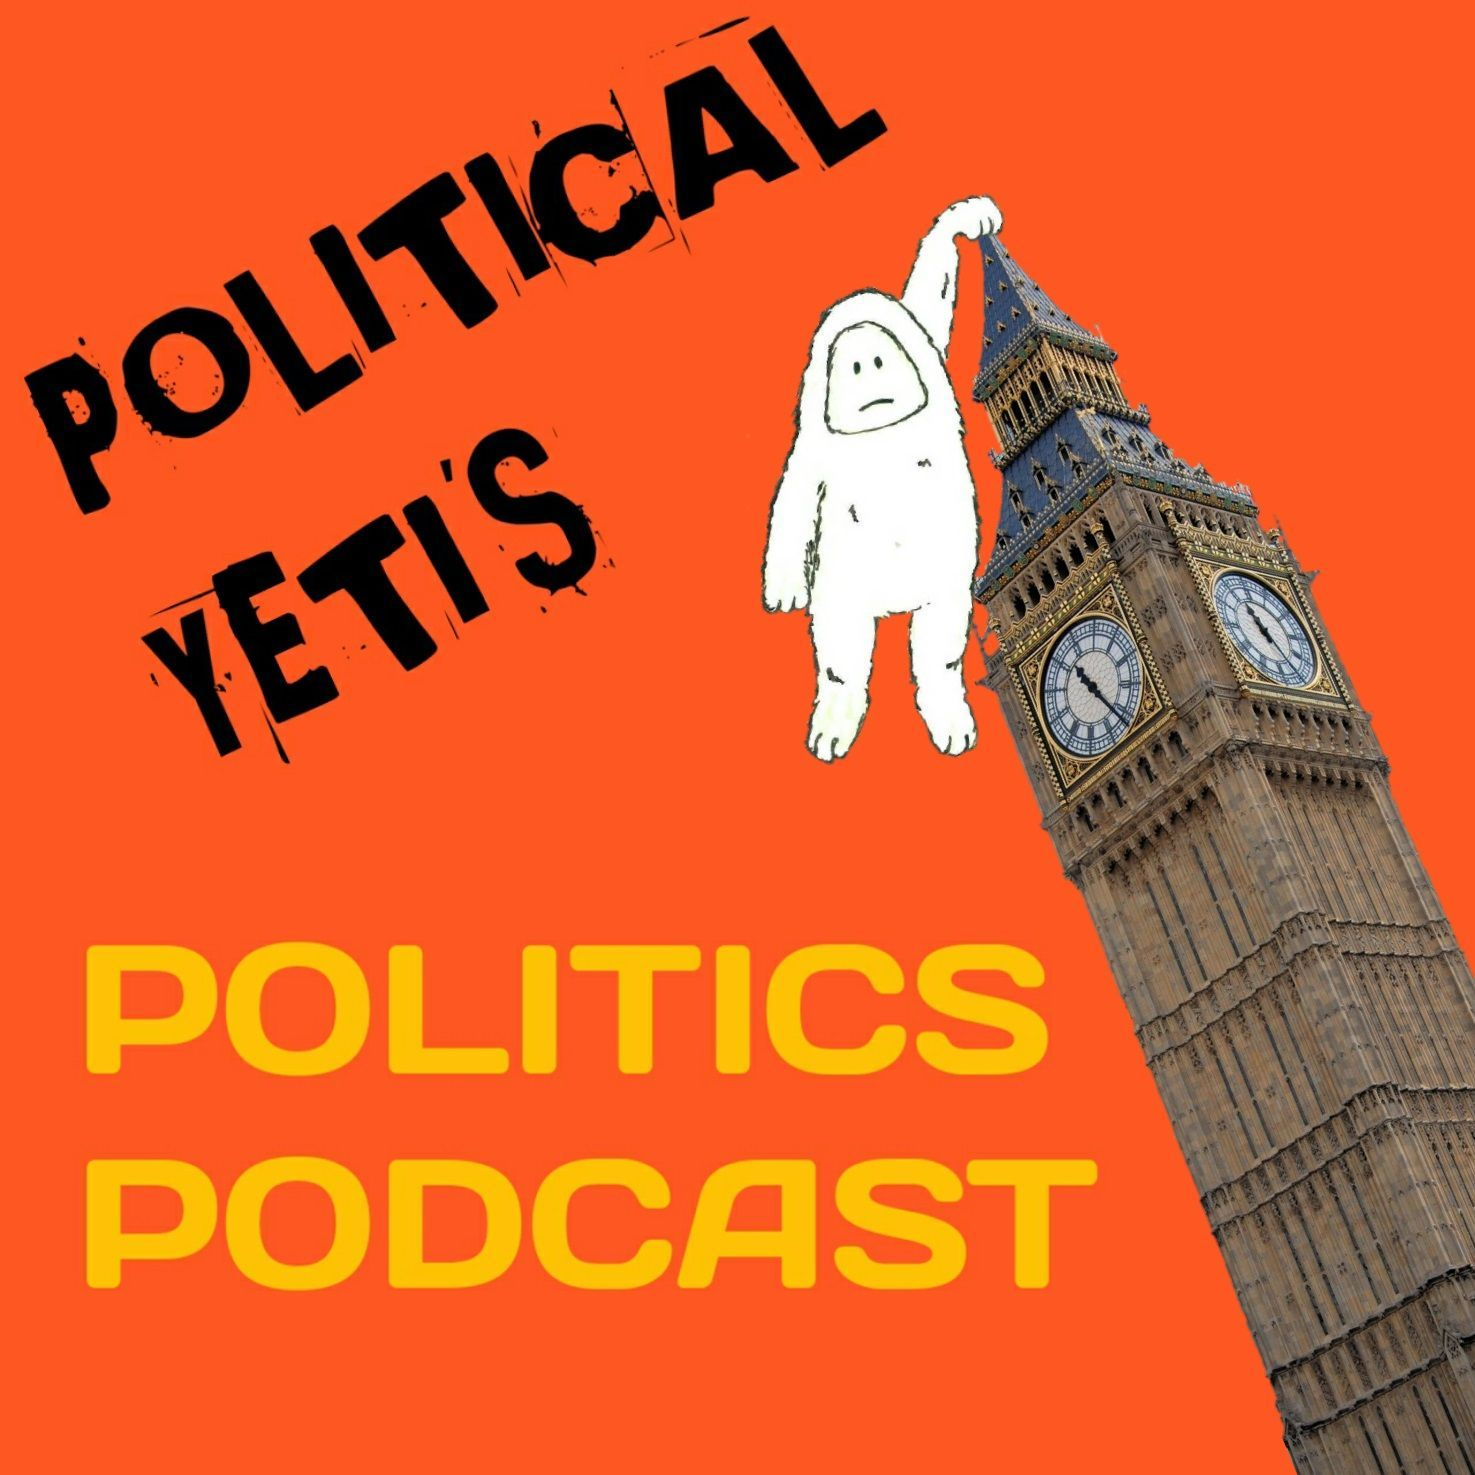 EPISODE 48 - Kirsty Blackman of the SNP and Tony Grew in review